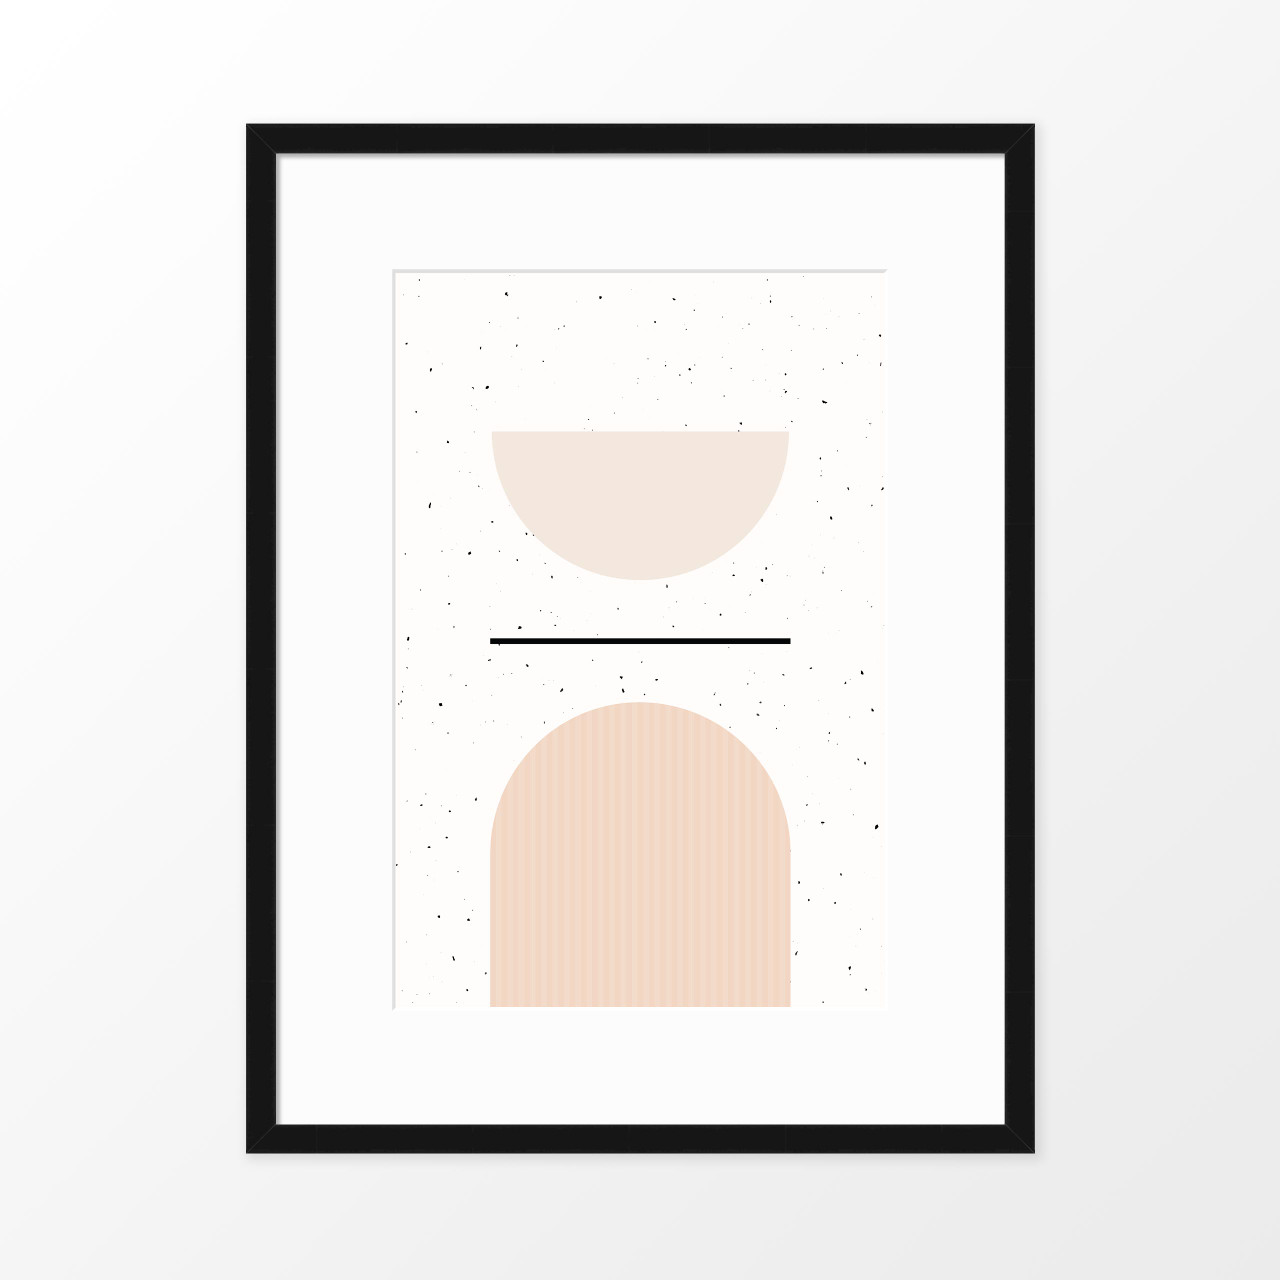 'Speckled I' Minimalist Geometric Art Print from The Printed Home